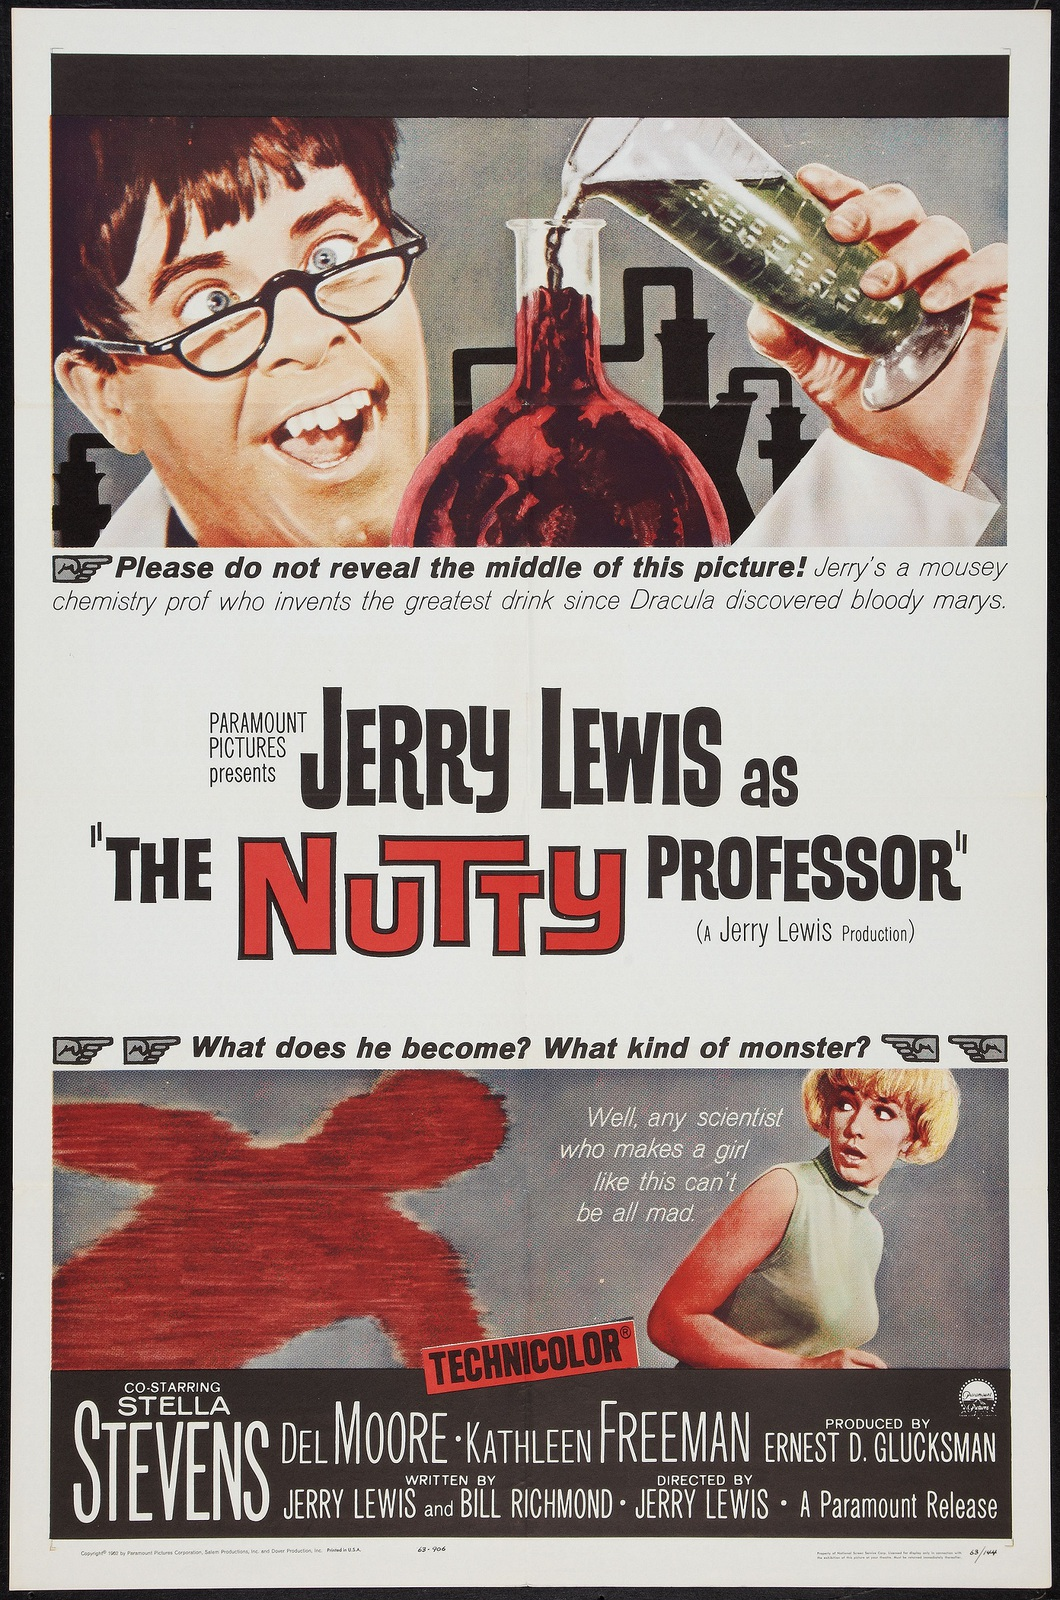 The Nutty Professor (1963) | Moviepedia | FANDOM powered ...